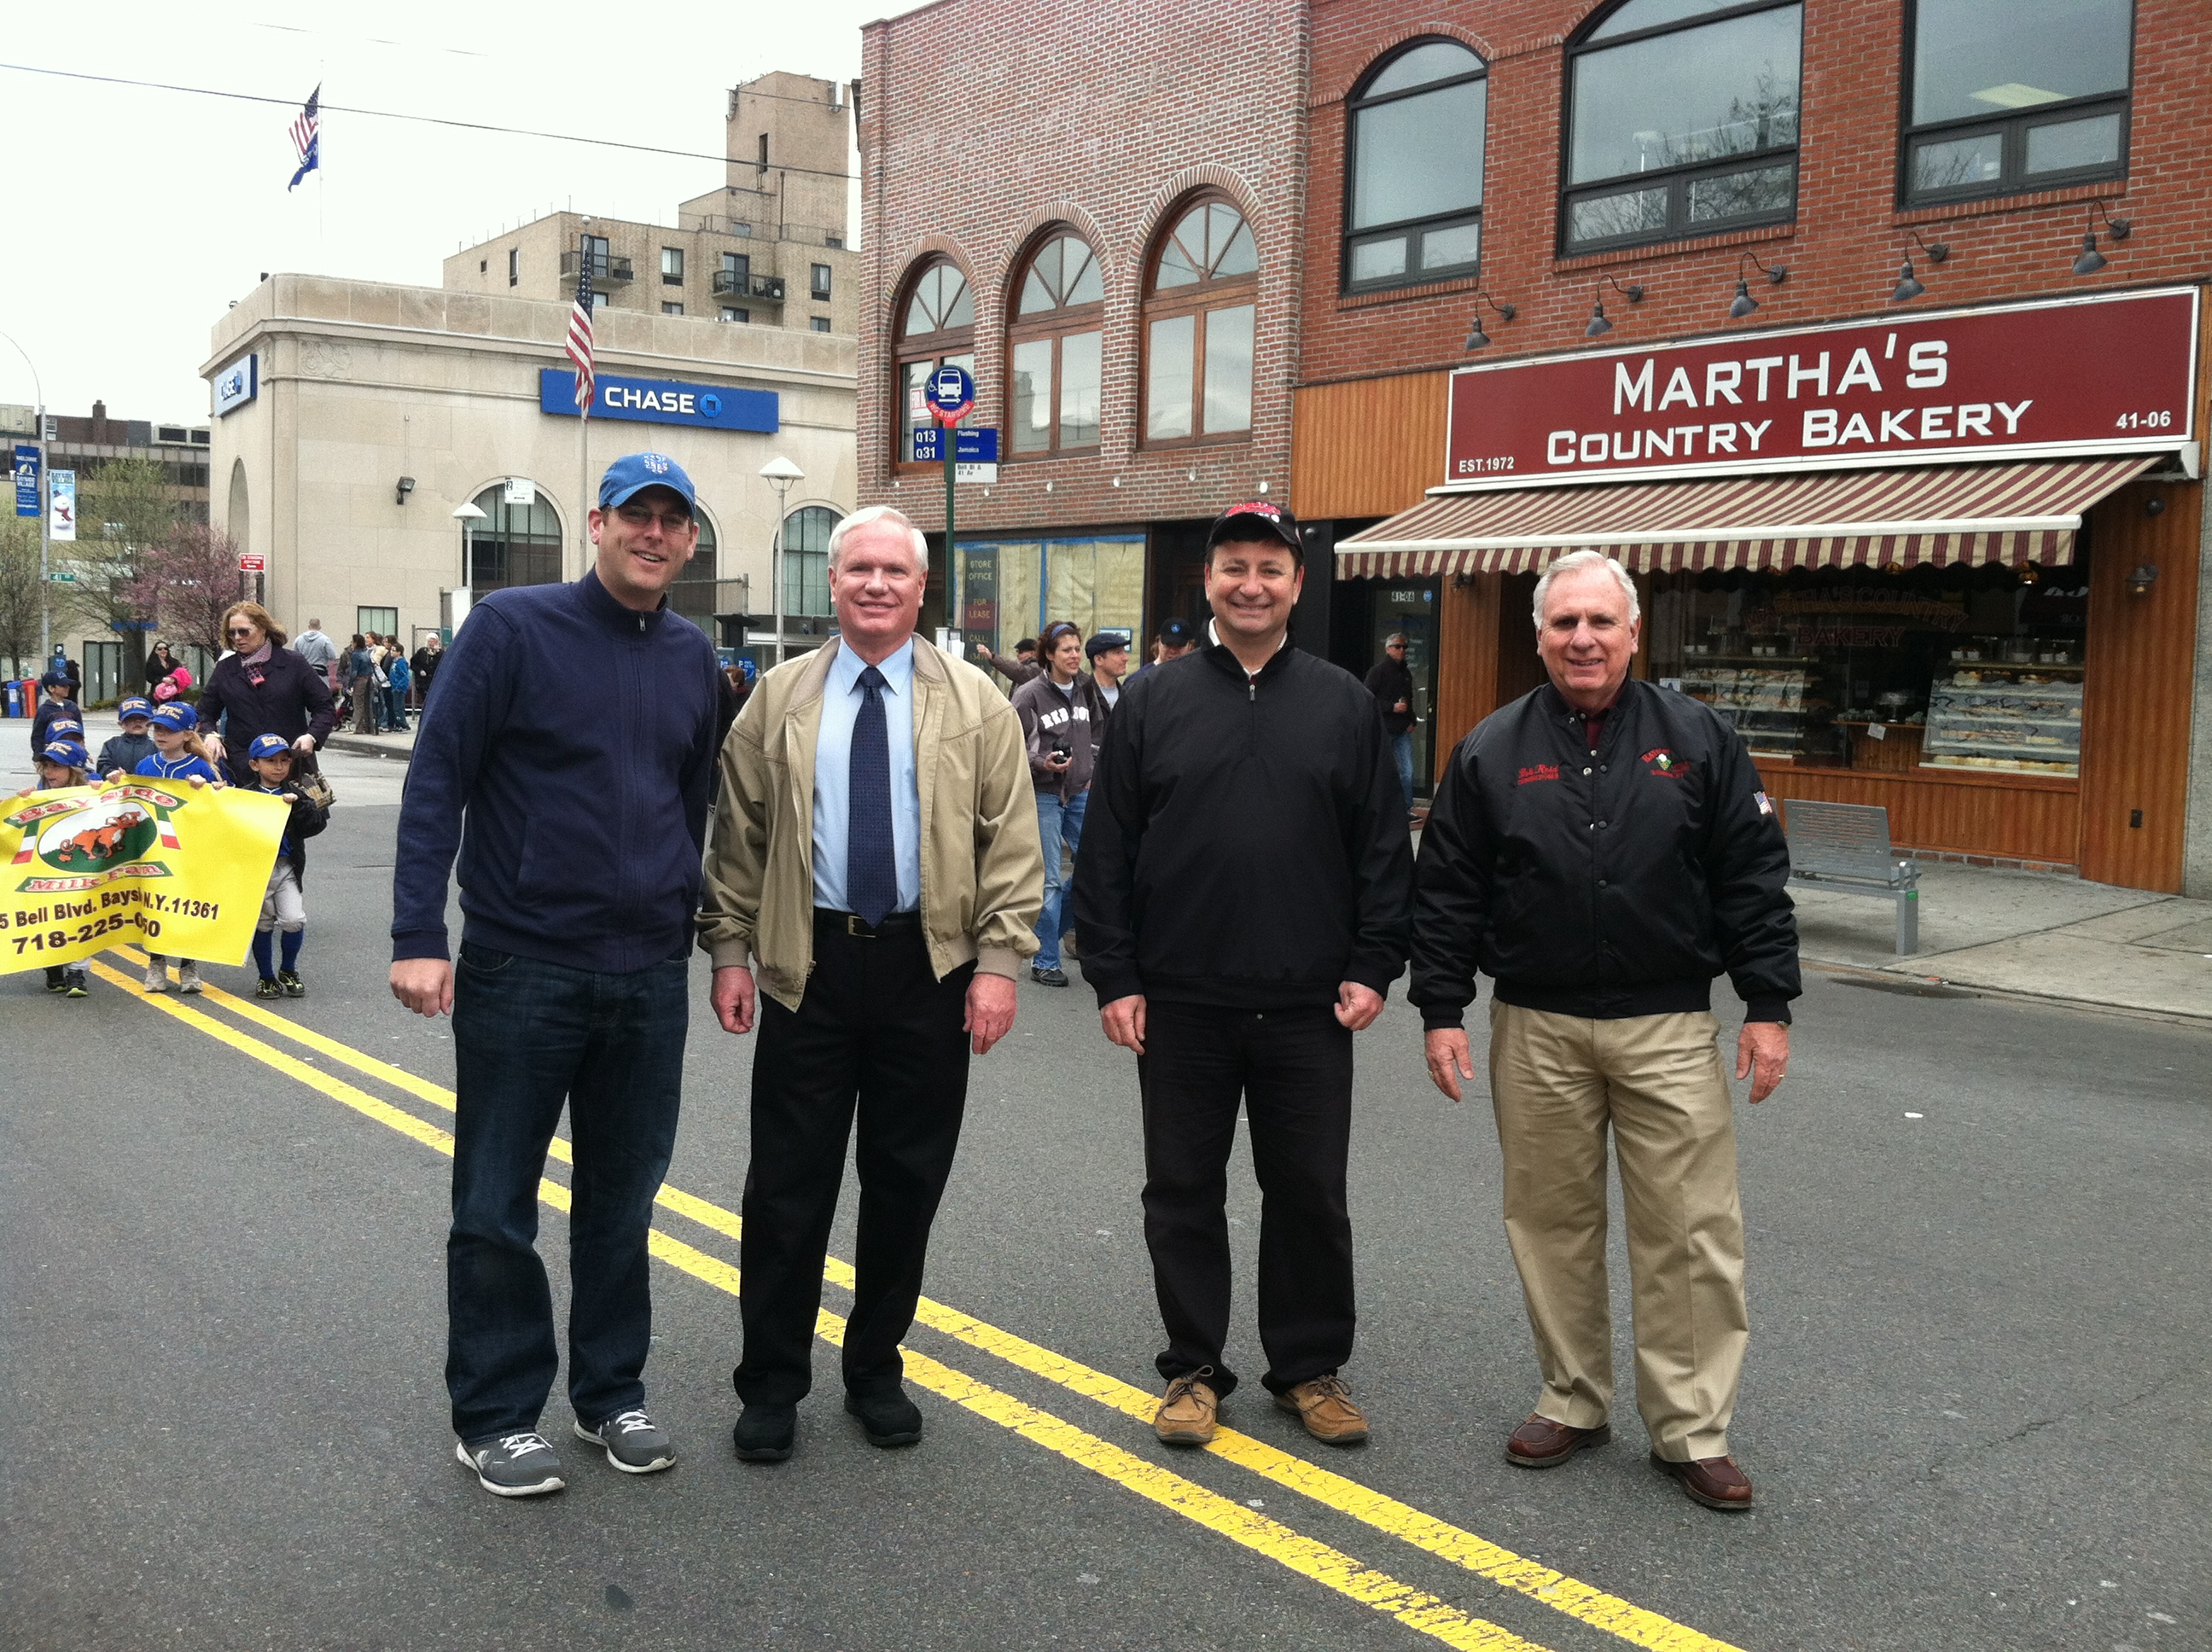 On Saturday, April 13, 2013, Assemblyman Braunstein threw out the first pitch at Bayside Little League's Opening Day Ceremonies. 